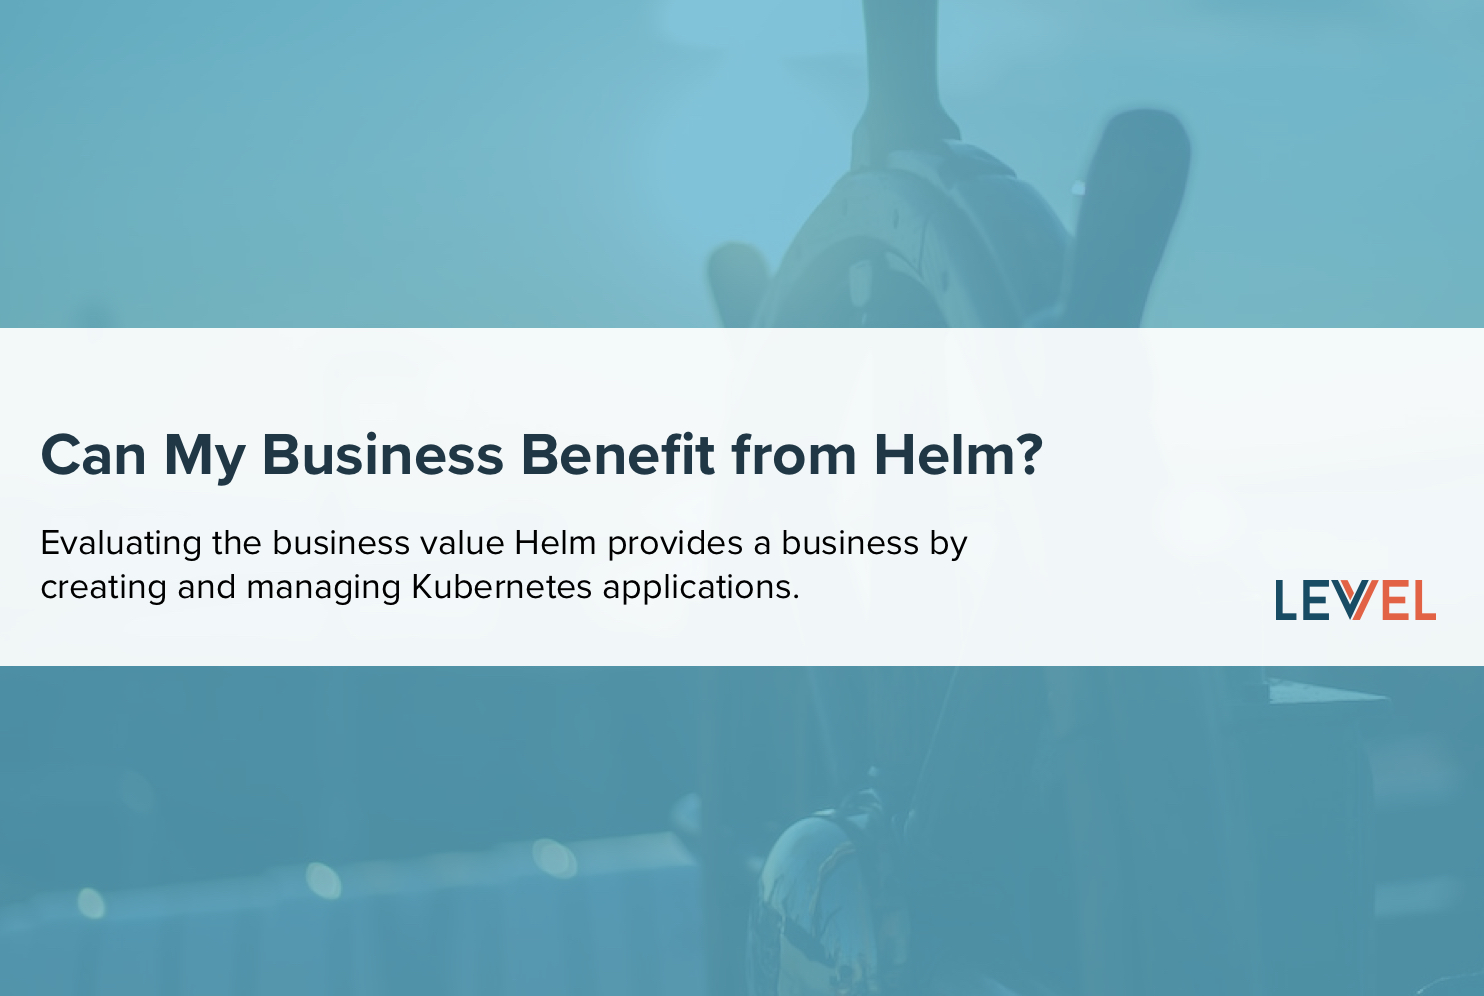 Can My Business Benefit from Helm?